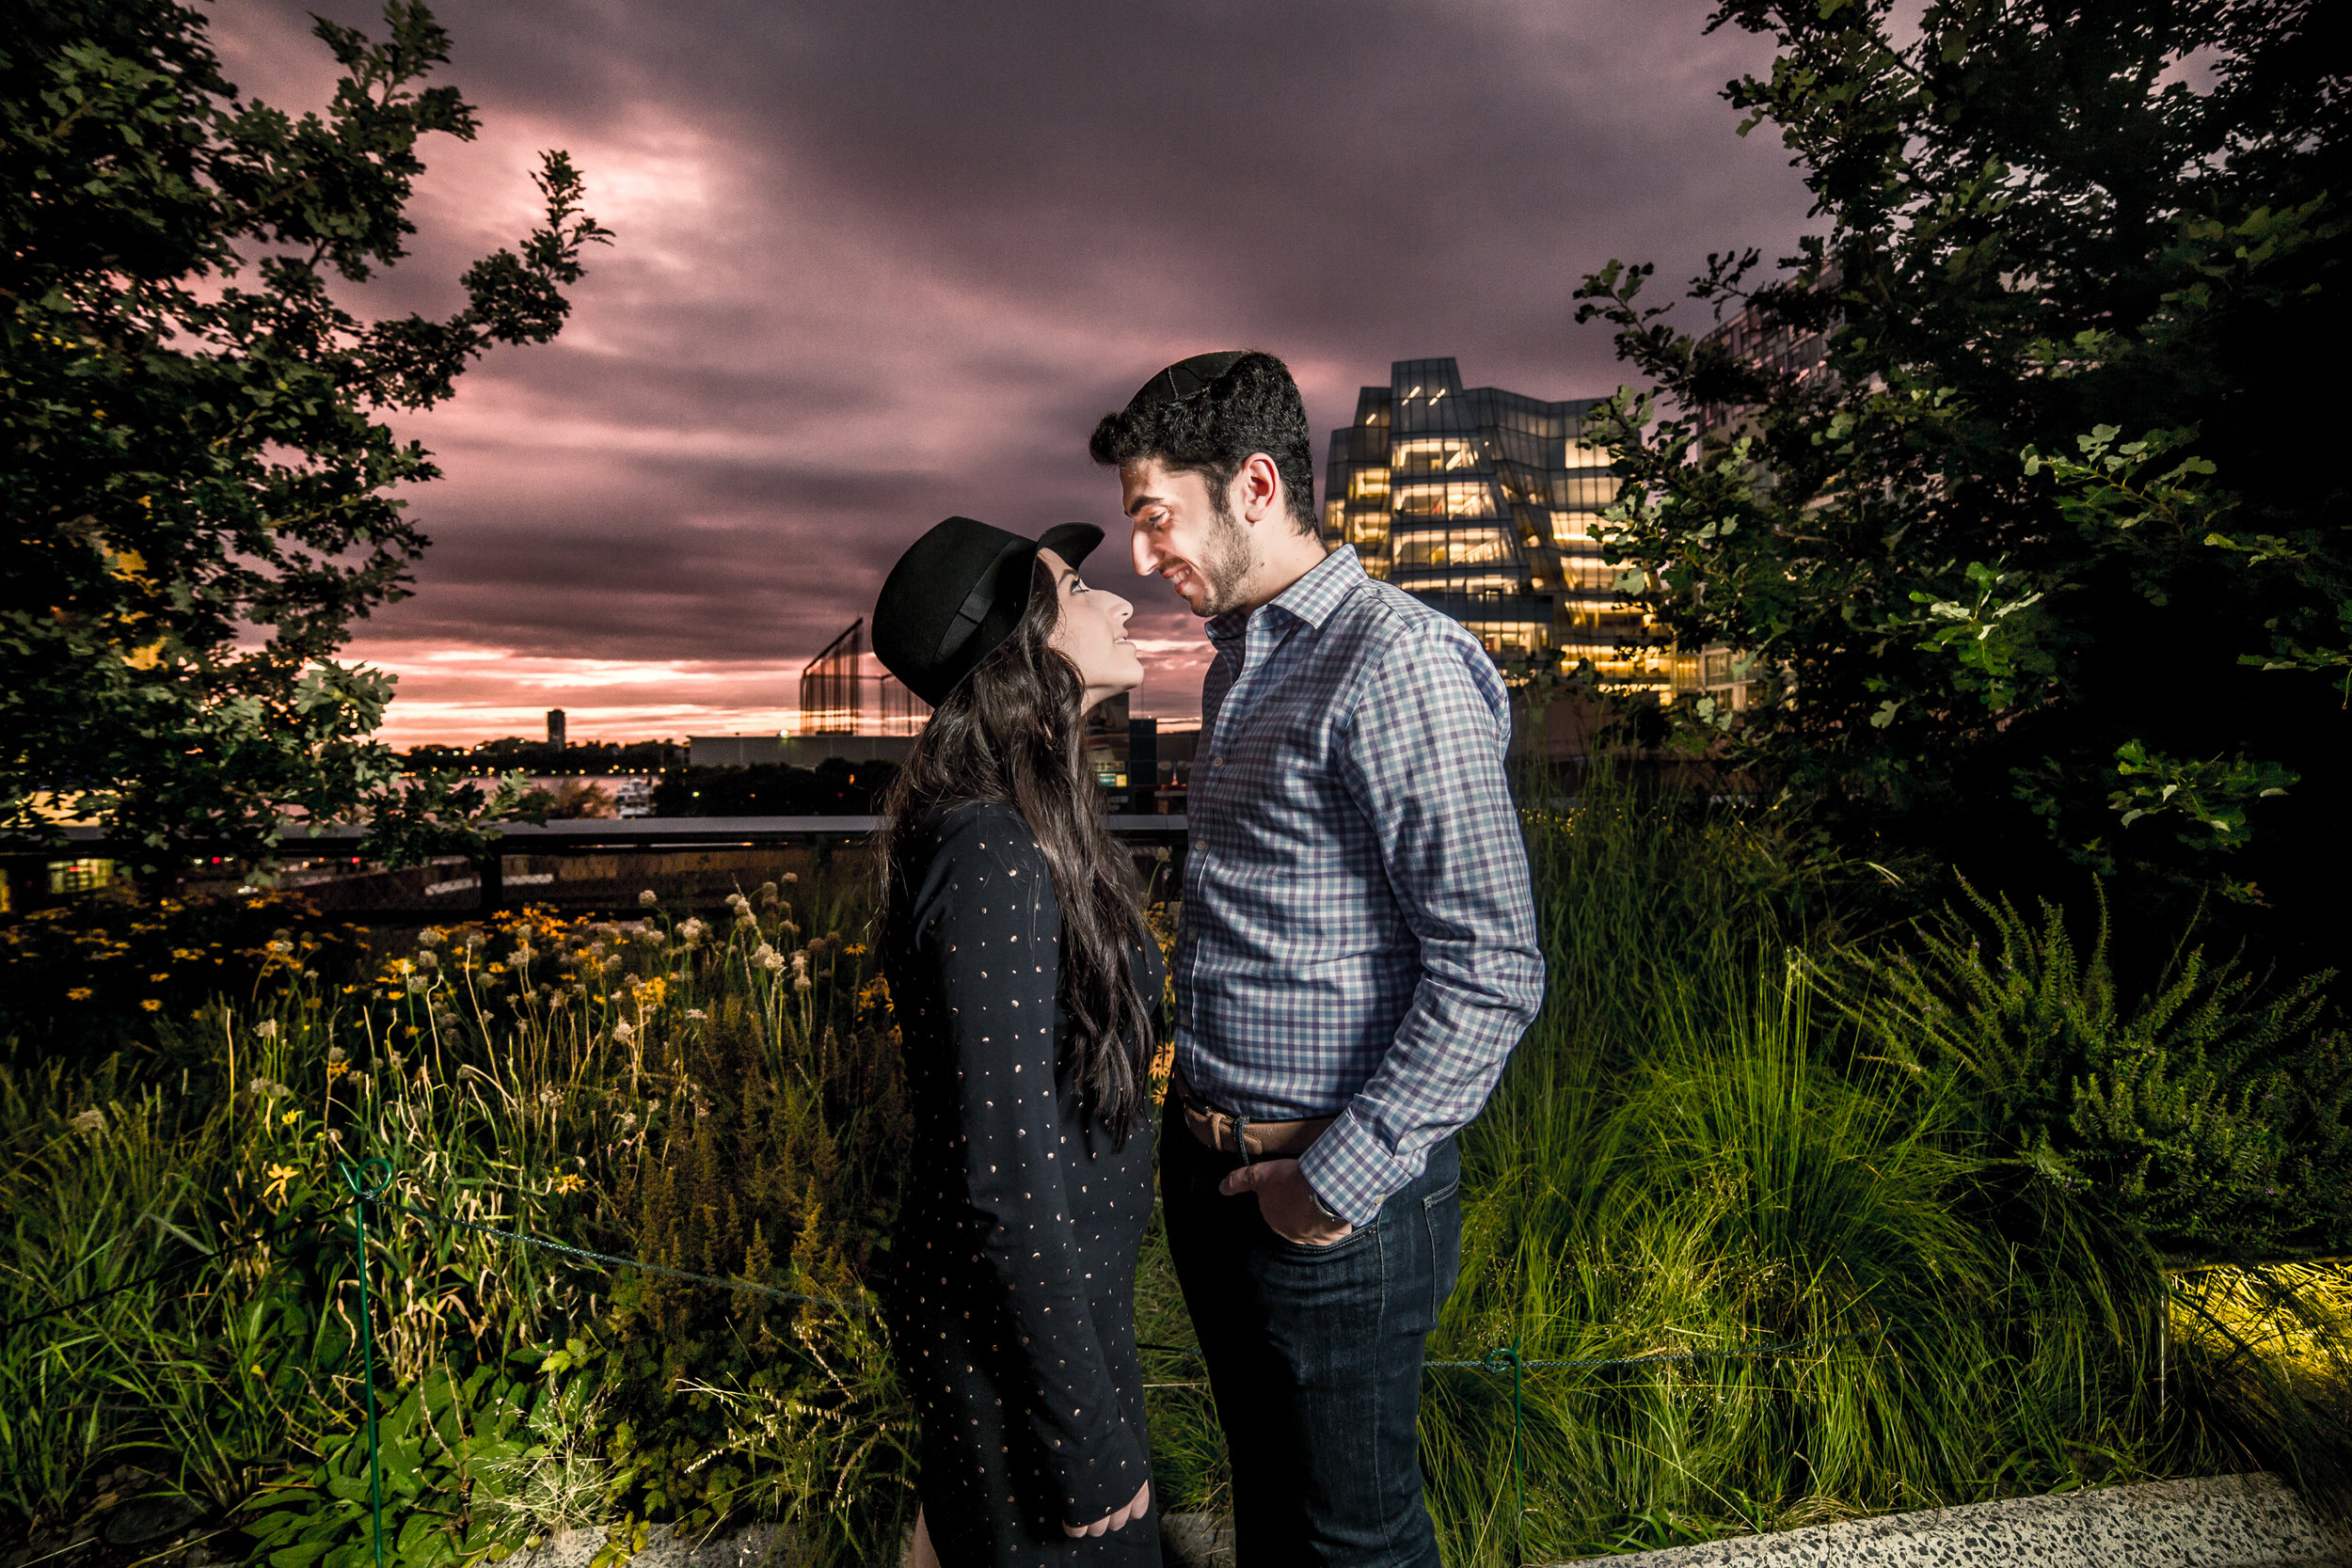 Rechela and David Engagement shoot - photography, new york, events, people -0049.jpg